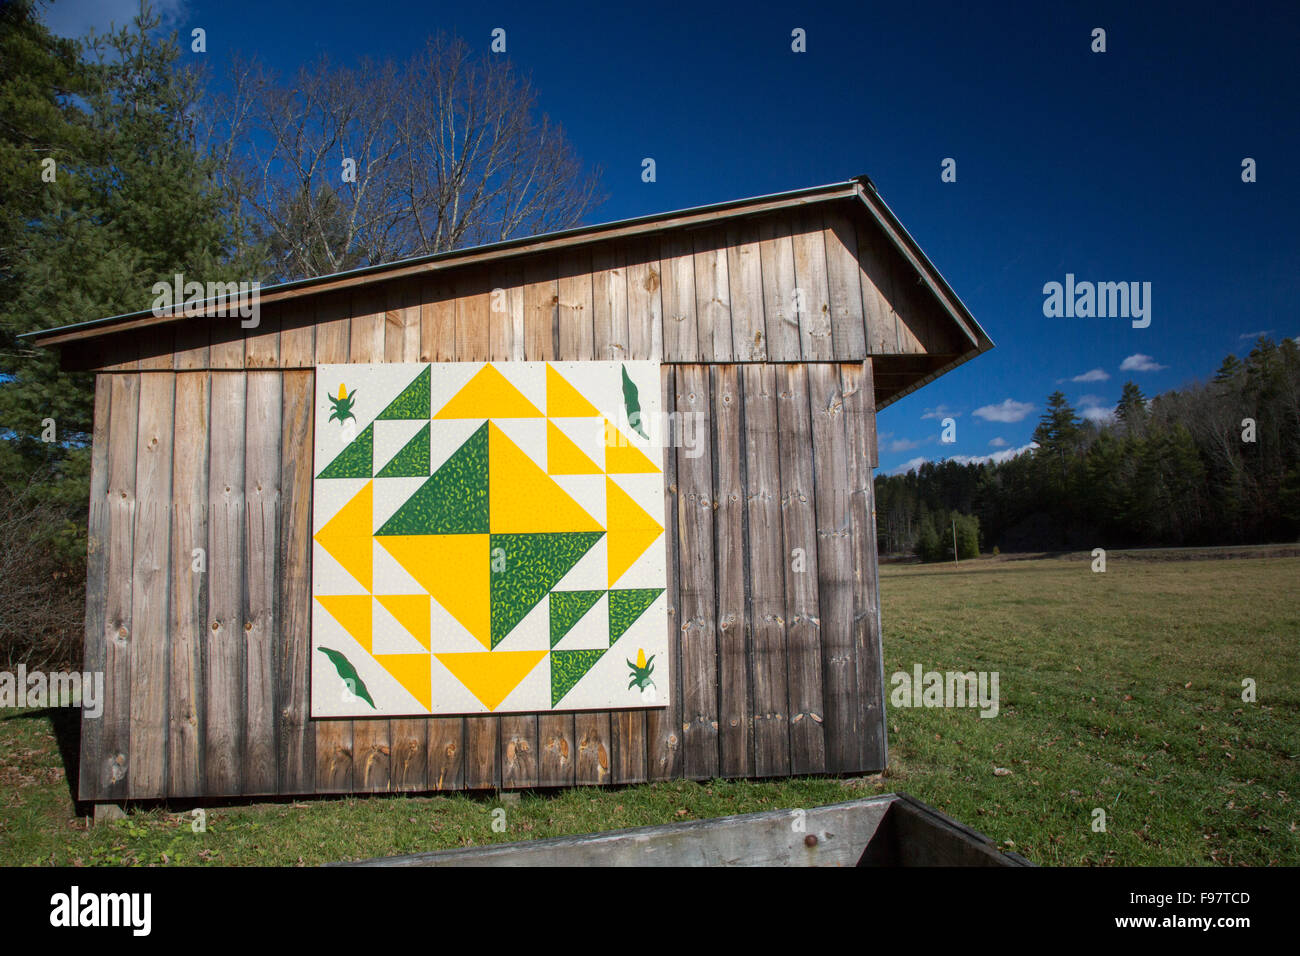 Rimel, West Virginia - Corn & Beans, a quilt pattern on a shed in Pocahontas County. - Stock Image